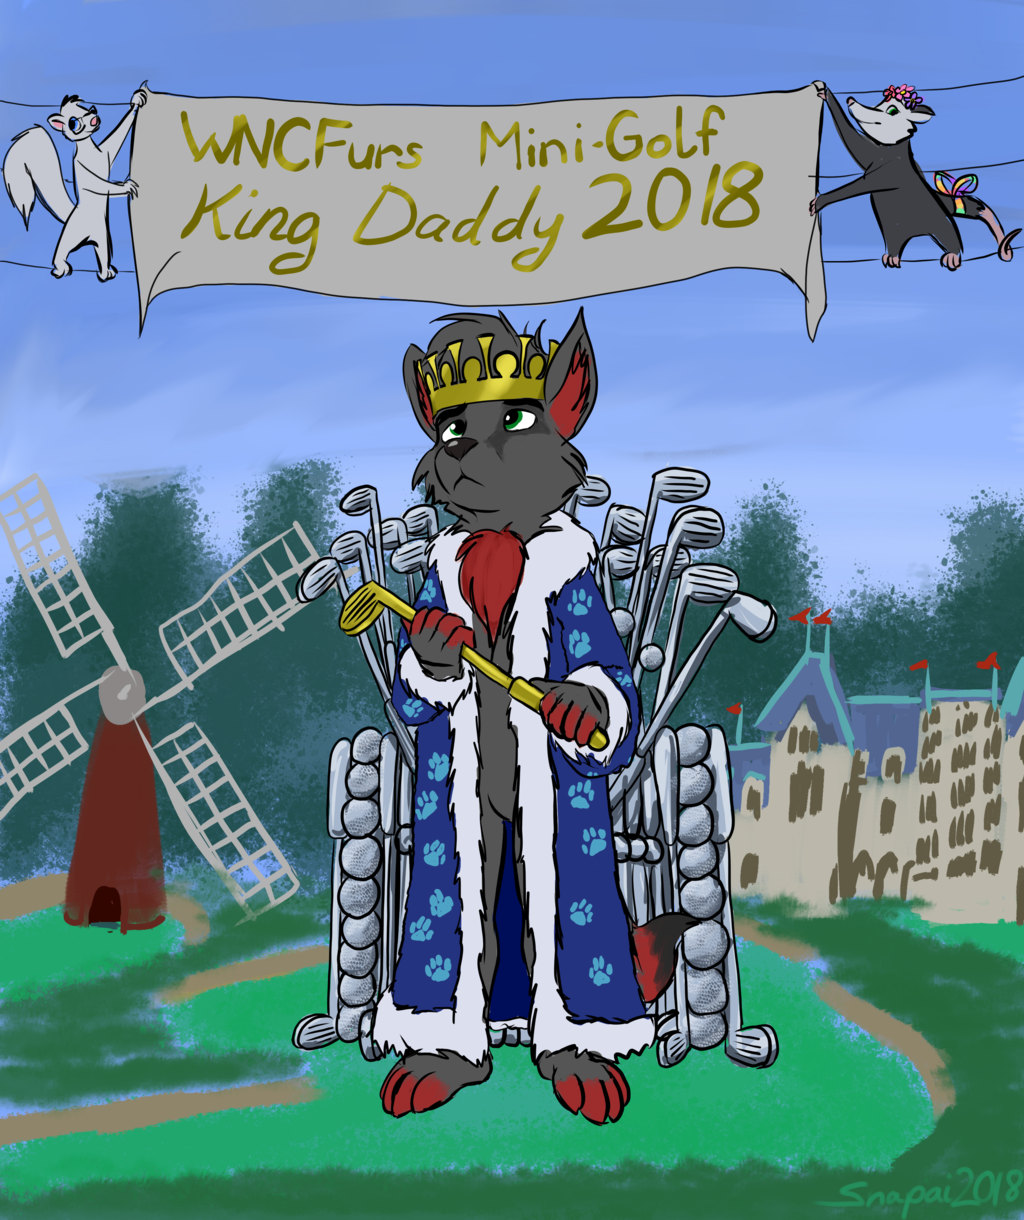 Most recent image: WNCFurs Mini Golf King Daddy 2018